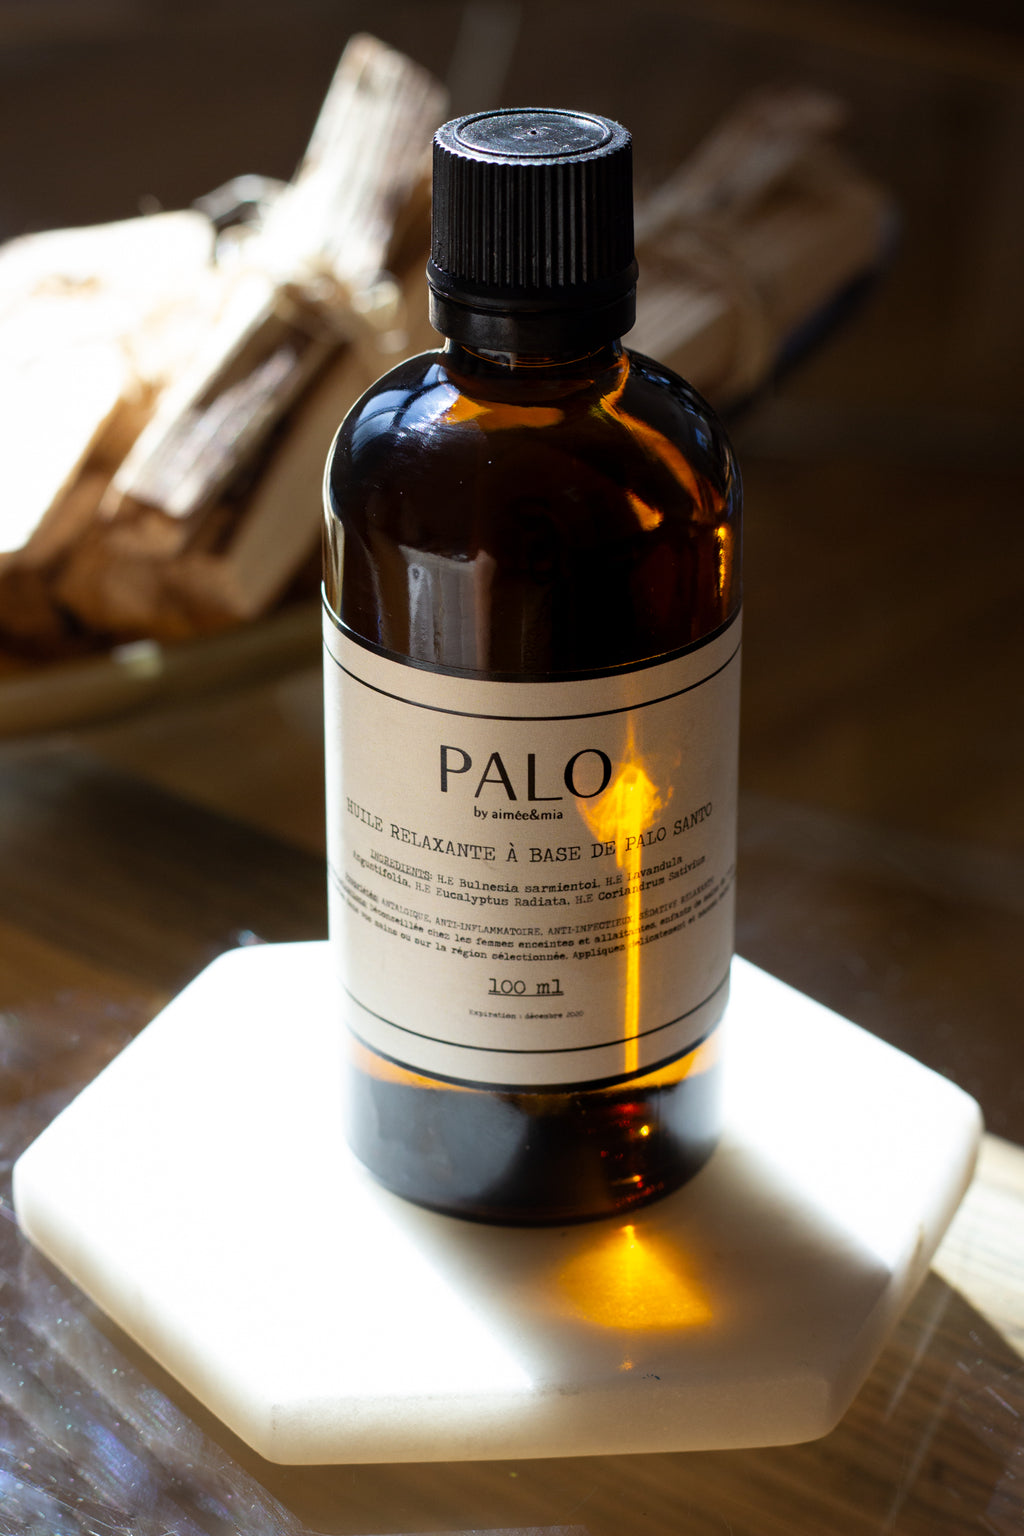 Palo relaxing body oil